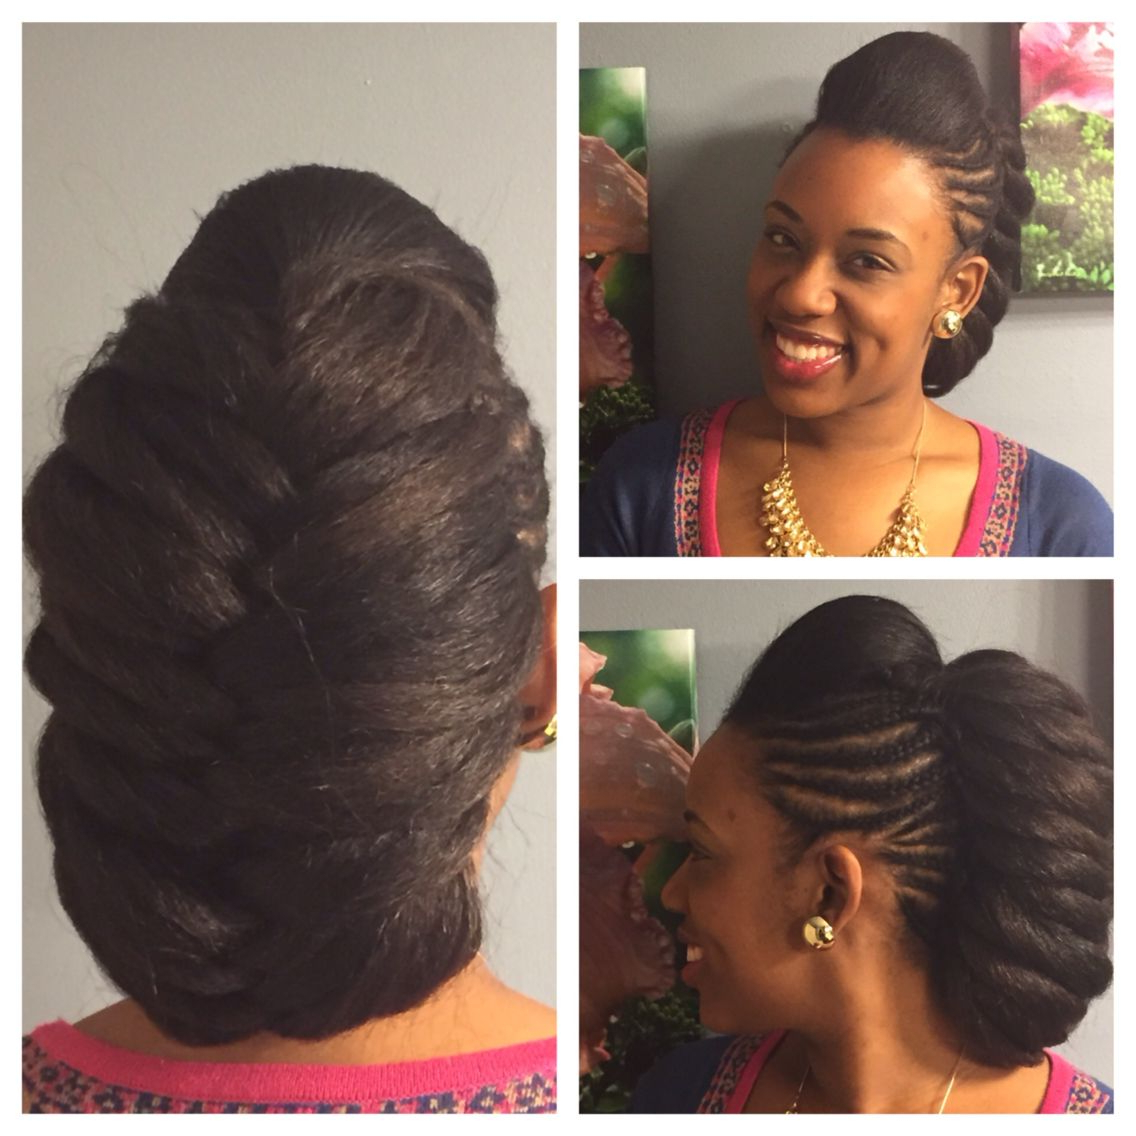 Rock This Protective Style For A Mix Of Class And Fun Throughout Most Current Center Braid Mohawk Hairstyles (View 13 of 20)